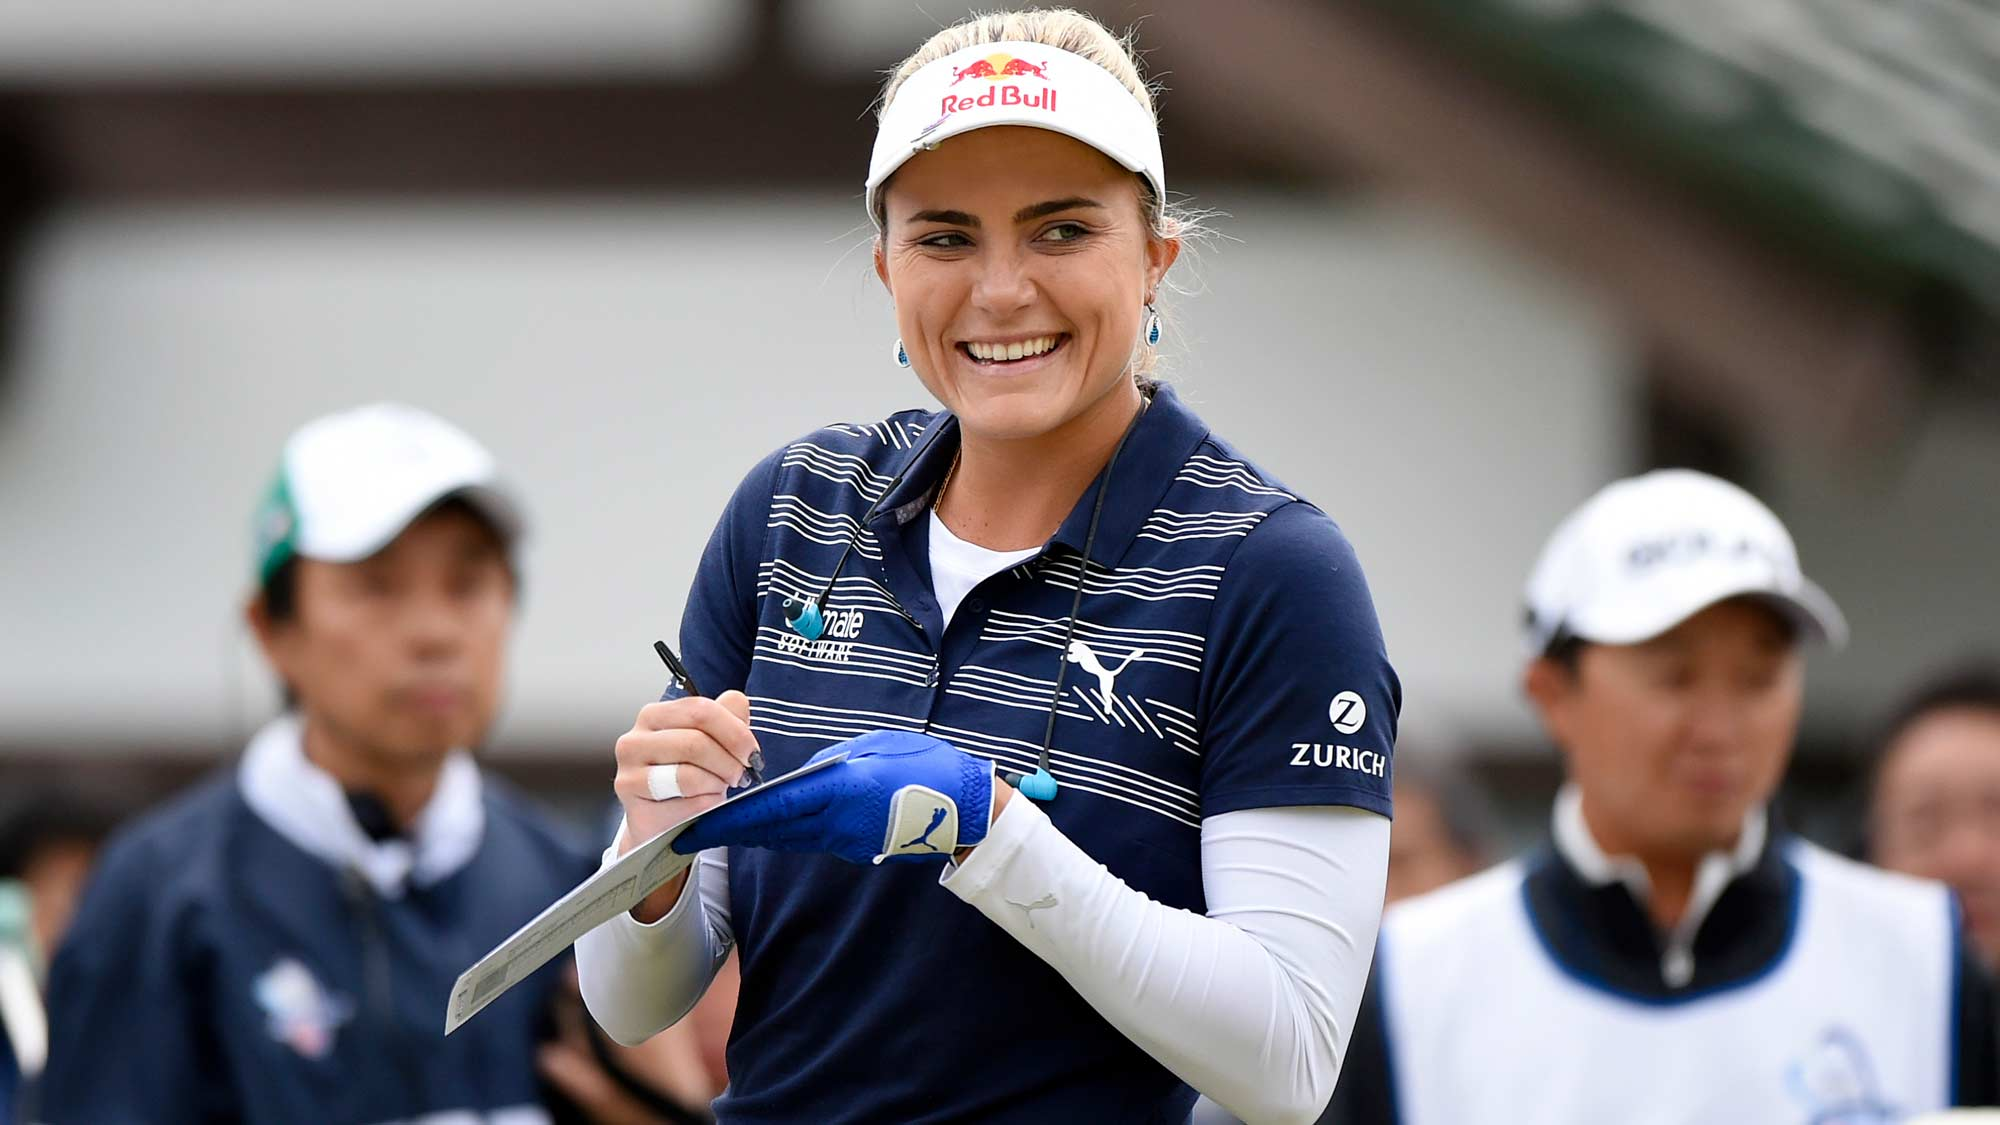 Lexi Thompson signing autographs at the TOTO Japan Classic